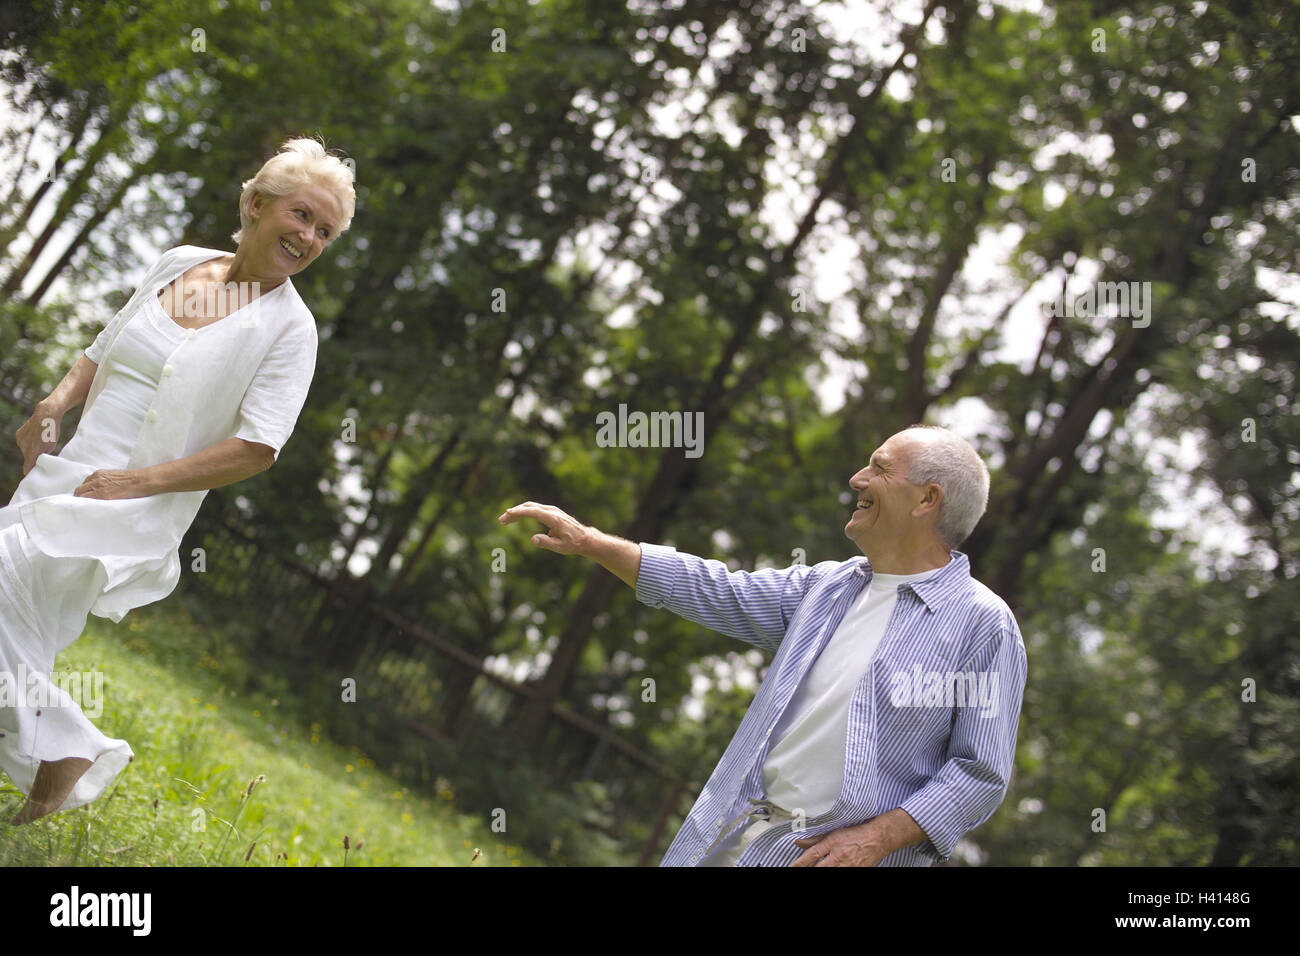 Meadow, Senior couple, play to trap couple, senior citizens, Best Agers, falls in love, gambles away love, partnership, Stock Photo